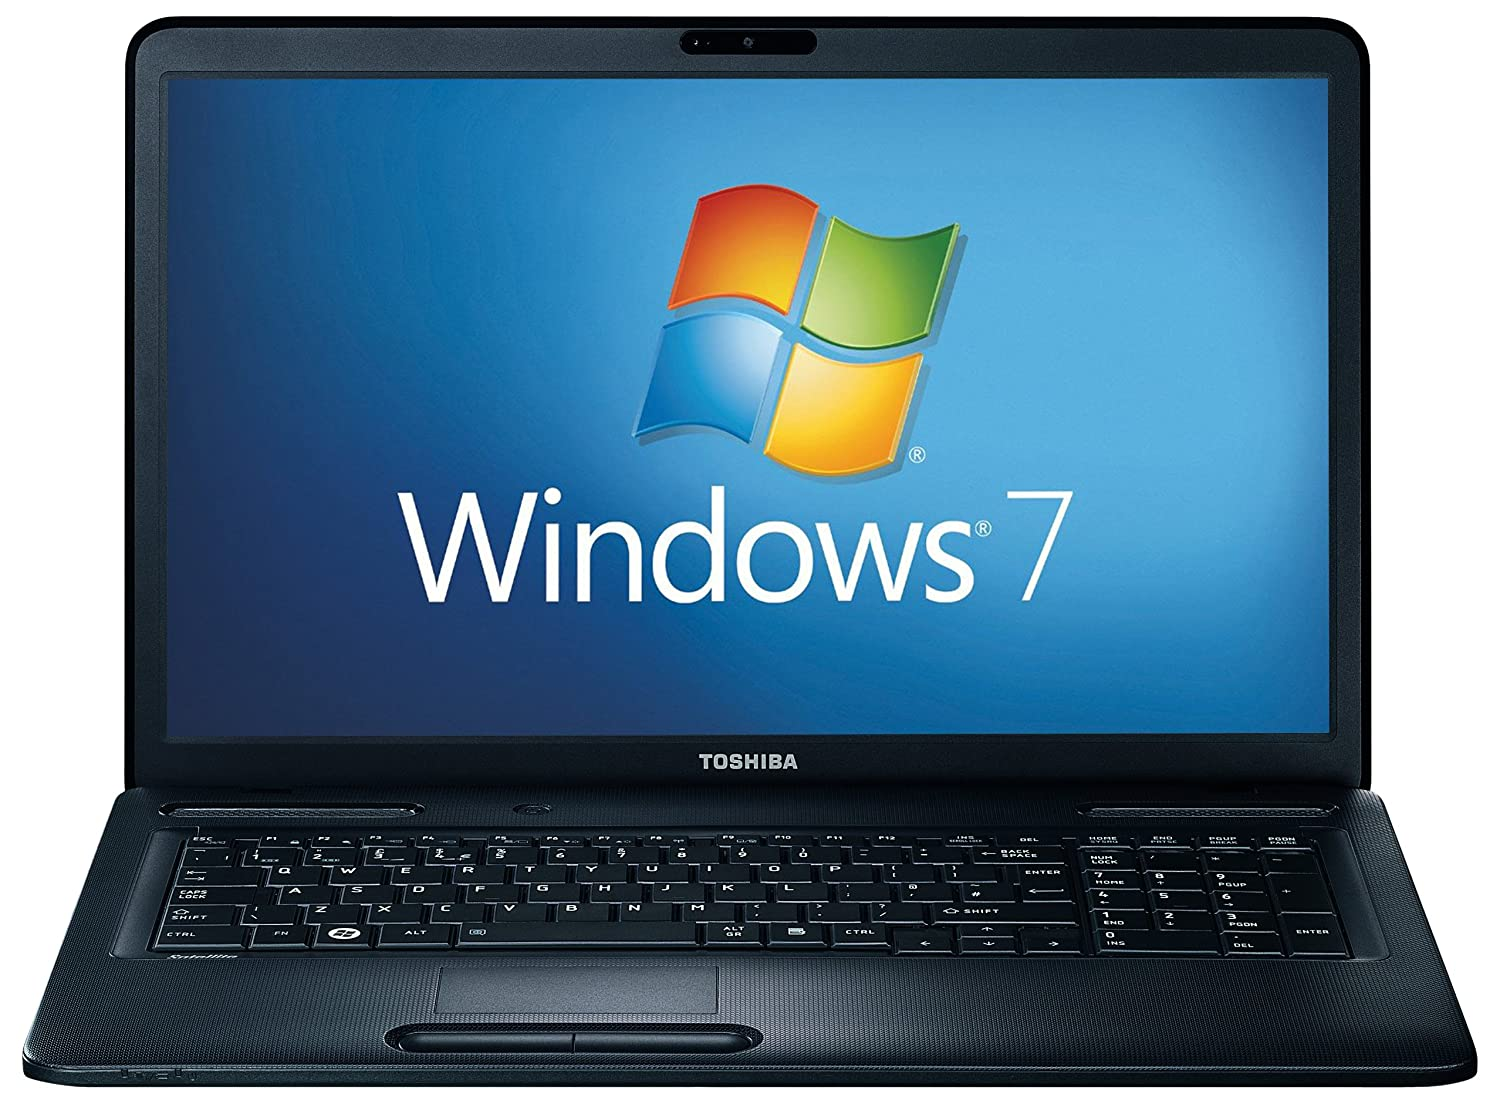 TOSHIBA SATELLITE C670 SLEEP WINDOWS 7 X64 TREIBER